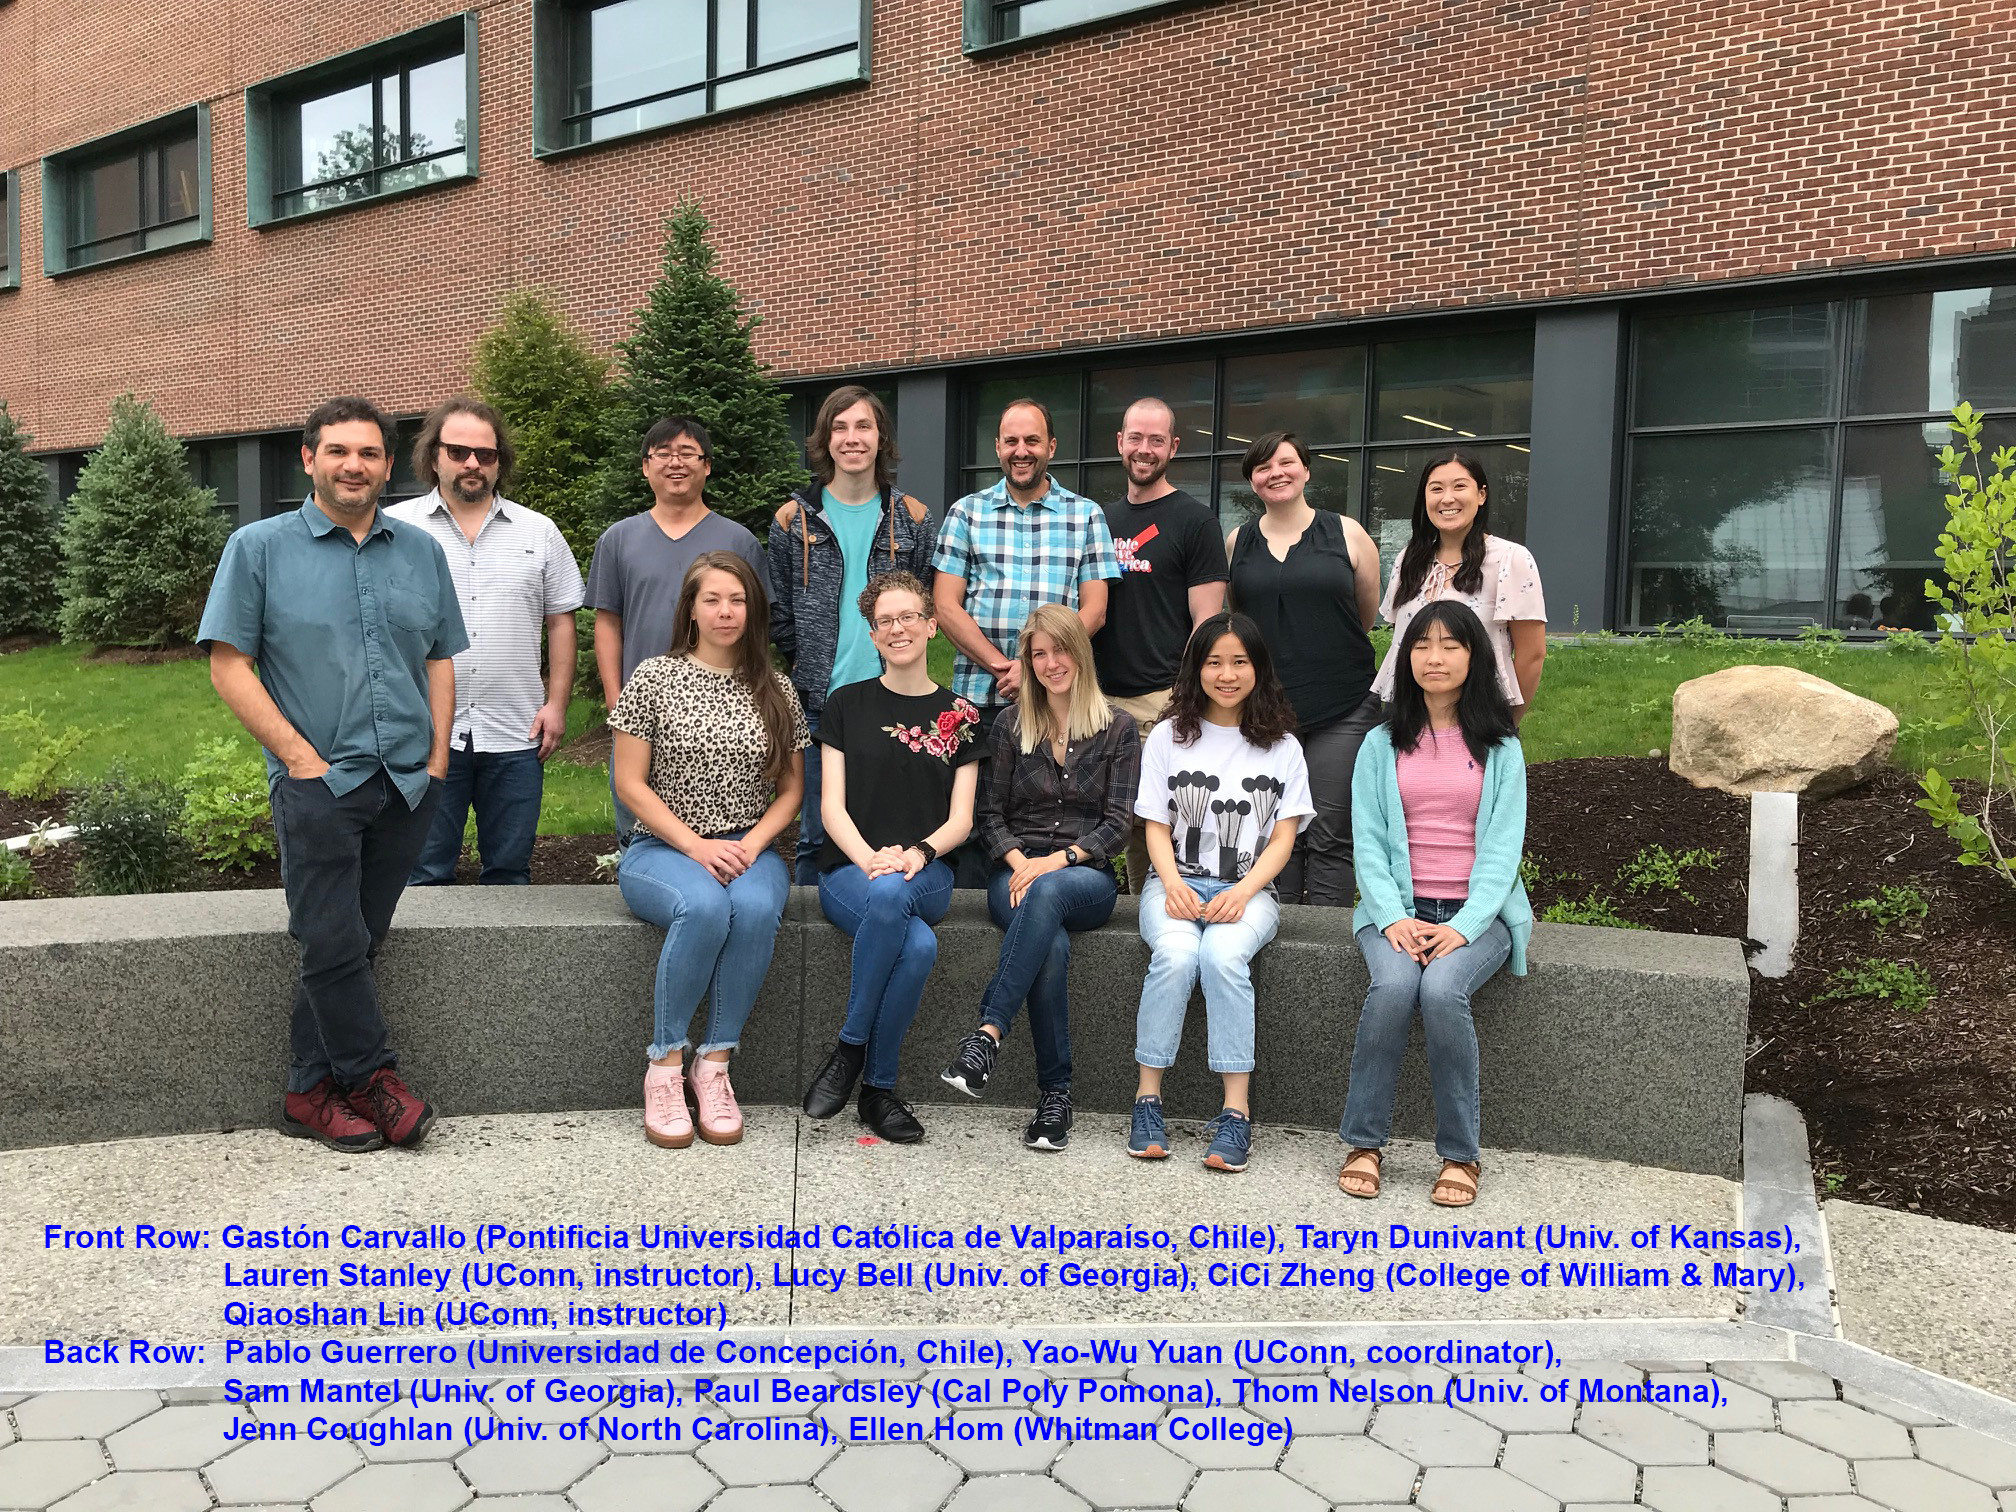 2019: The first Mimulus Functional Genomics Short Course (Storrs, CT)